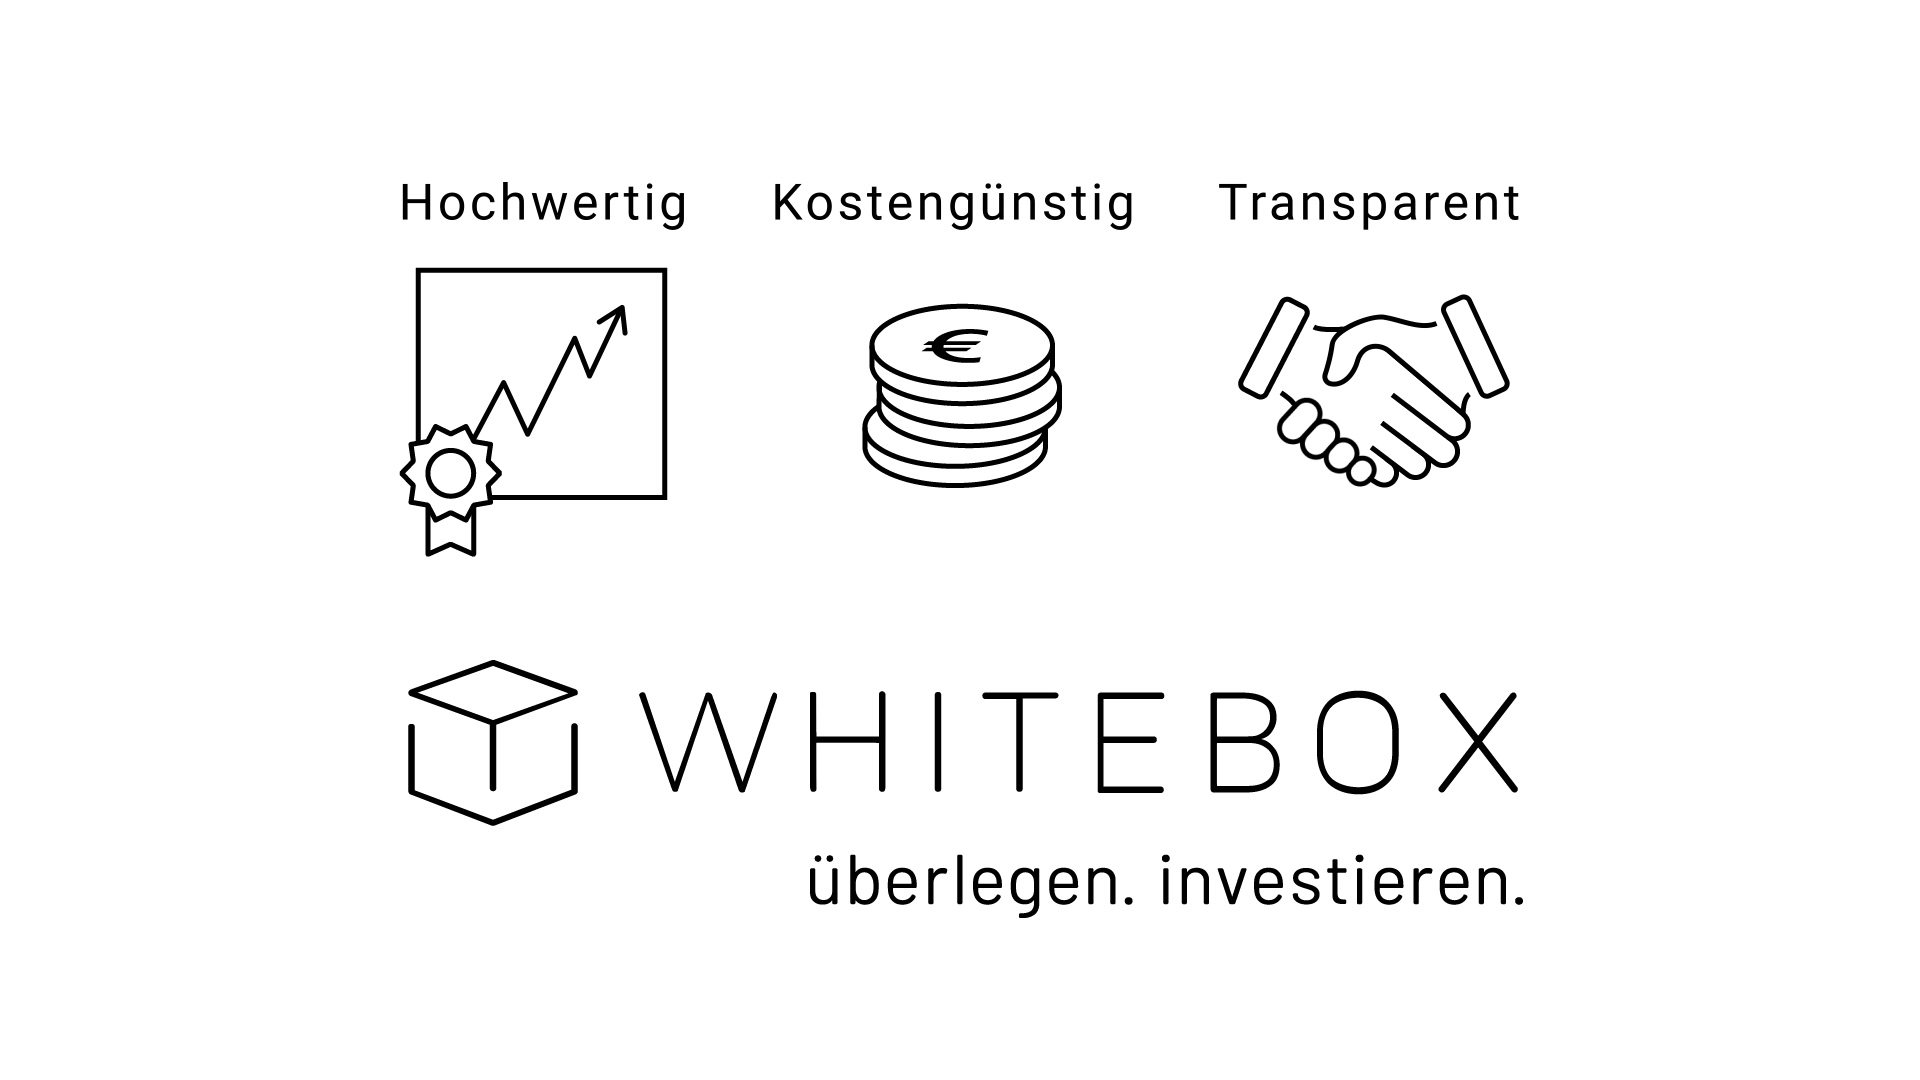 Whitebox_Erklärvideo_201909_k4_lang